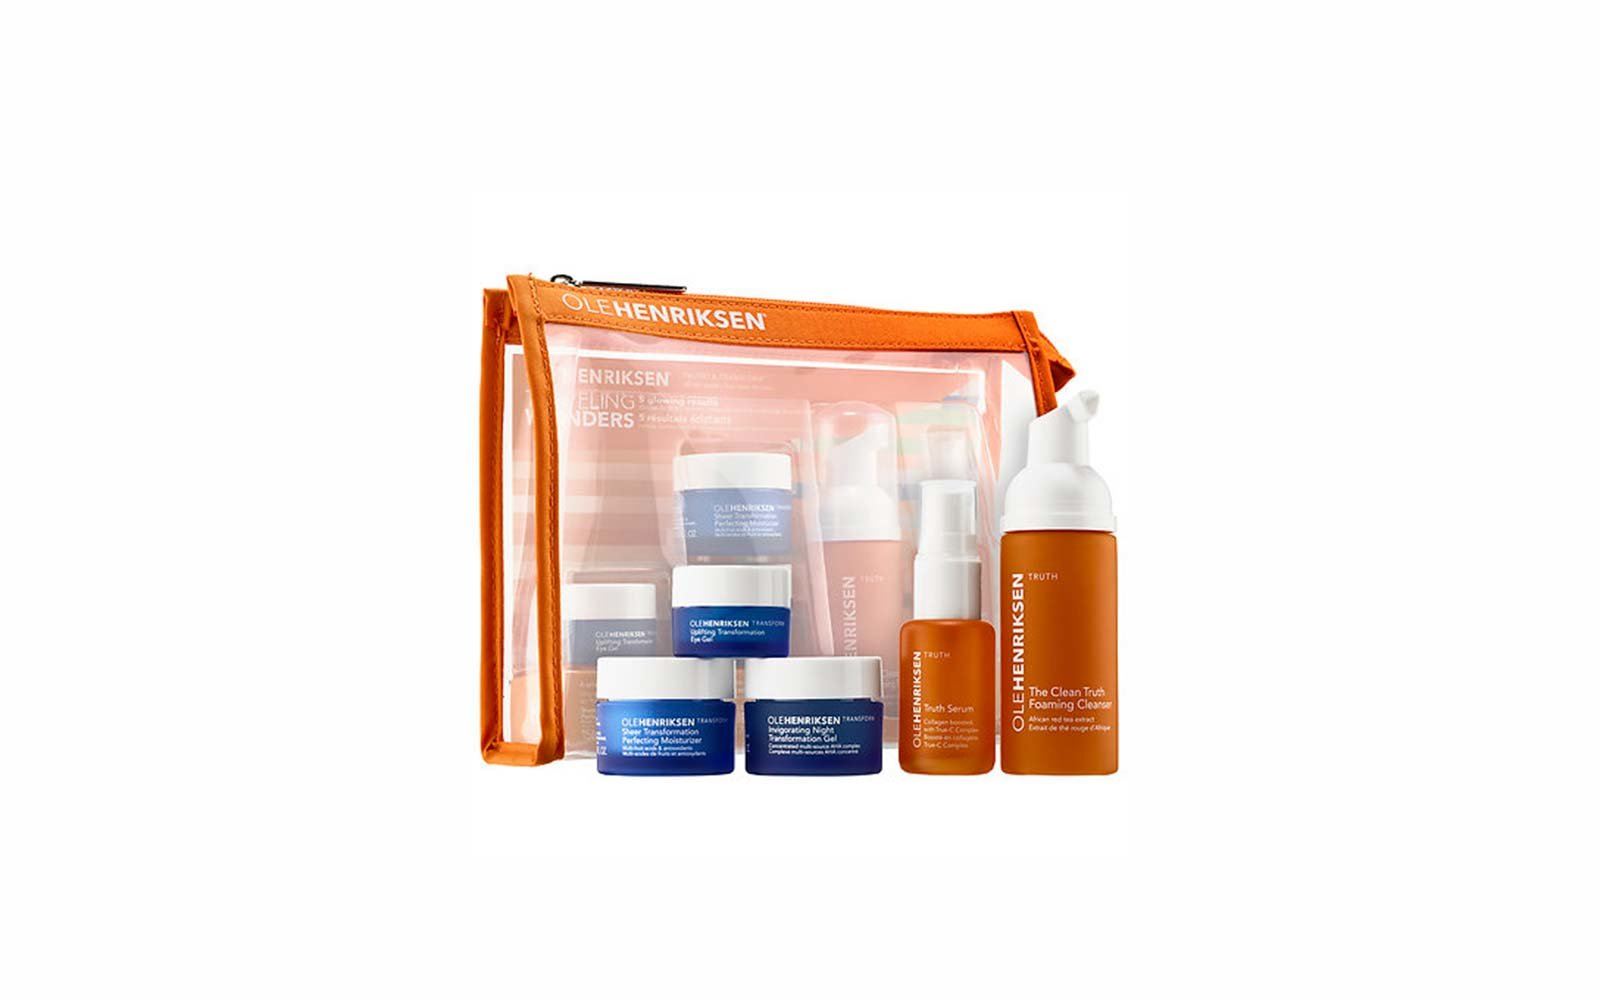 Travel Skincare Set Kits Olehenriksen